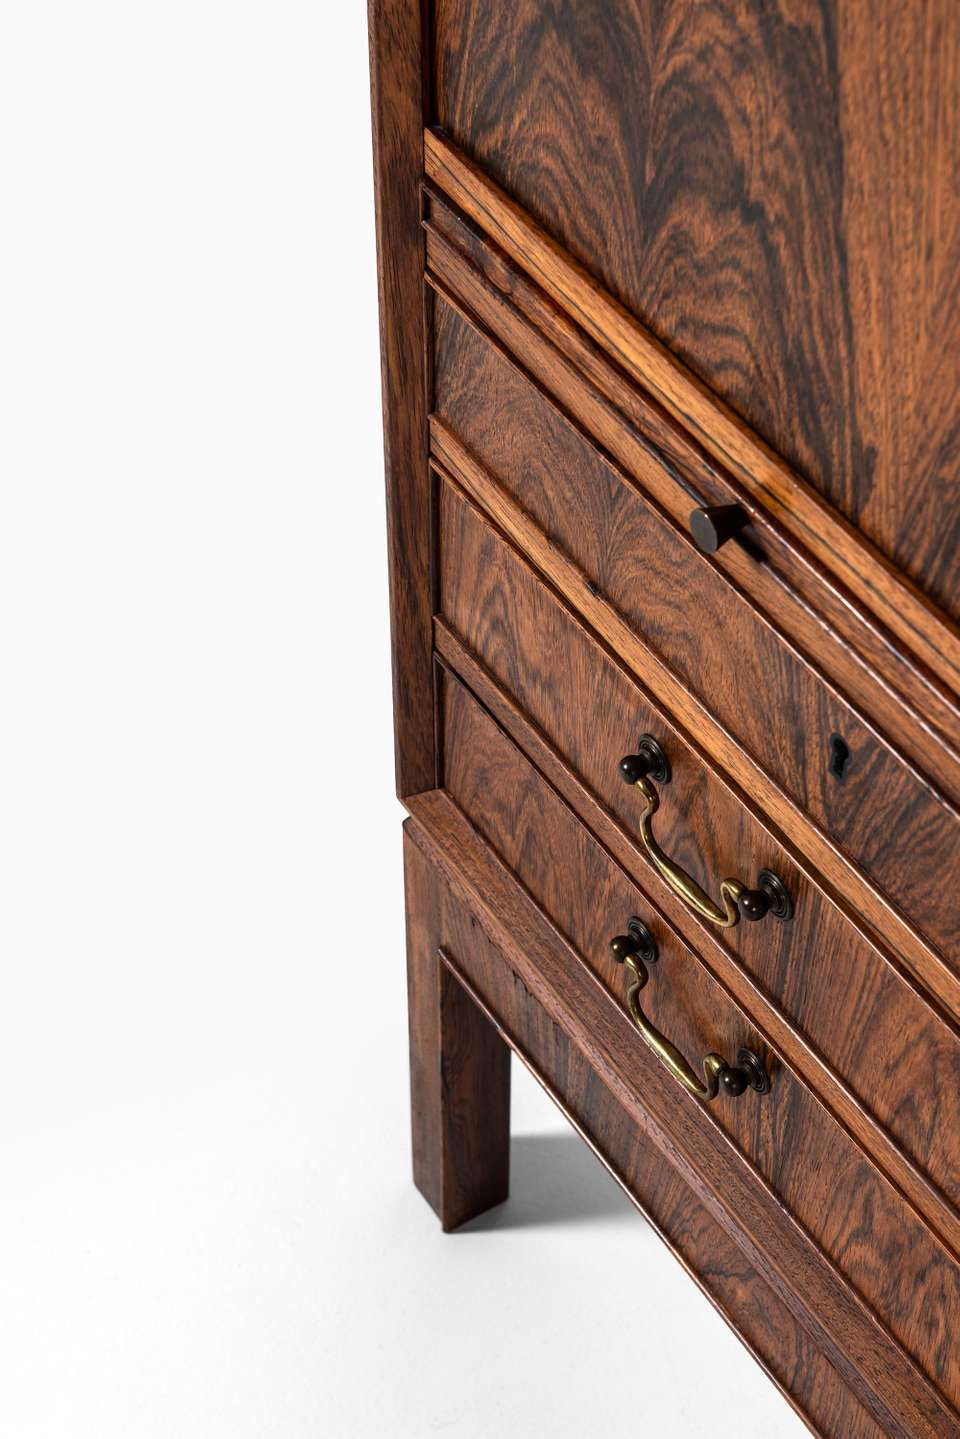 For Sale On 1stdibs Rare Cabinet In Rosewood Produced By Cabinetmaker C B Hansen In Denmark Rosewood Cabinet Cabinet Makers Rosewood Furniture